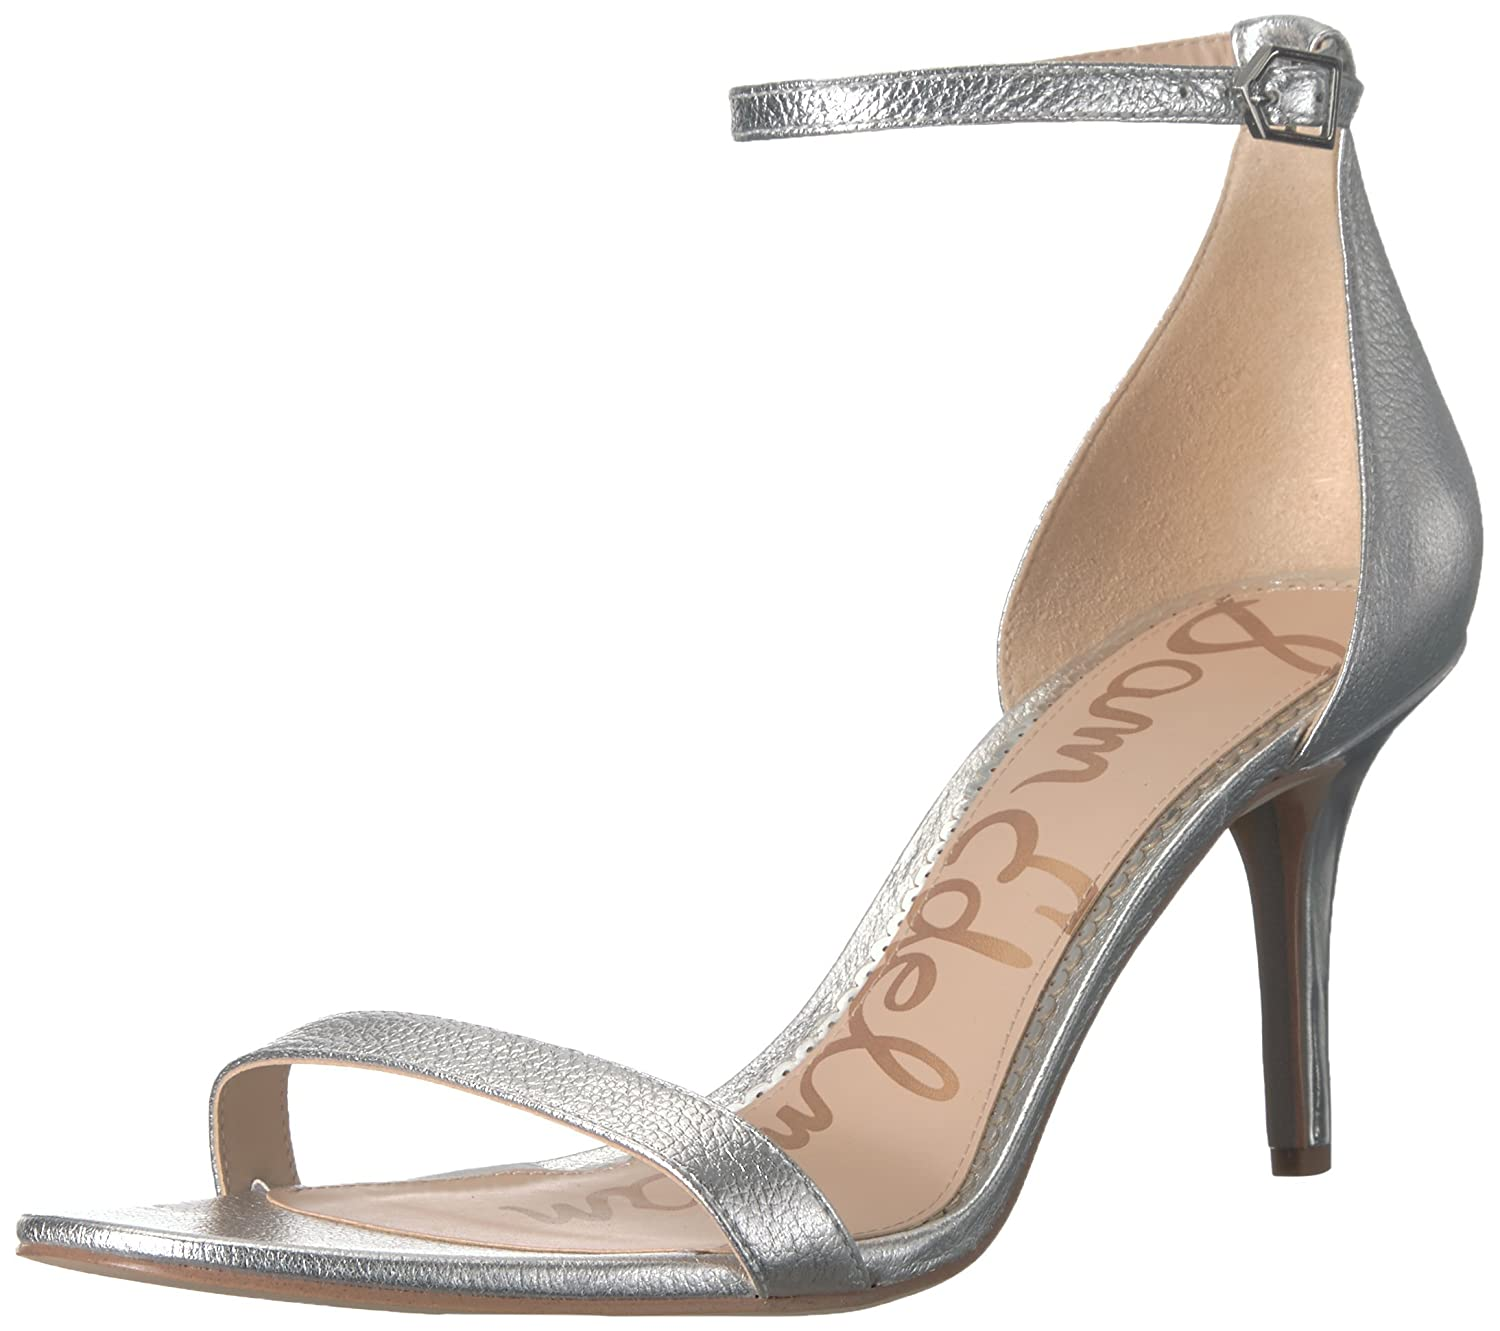 Sam Edelman Women's Patti Dress Sandal B019O8GQ7O 9 B(M) US|Soft Silver/Metallic Leather